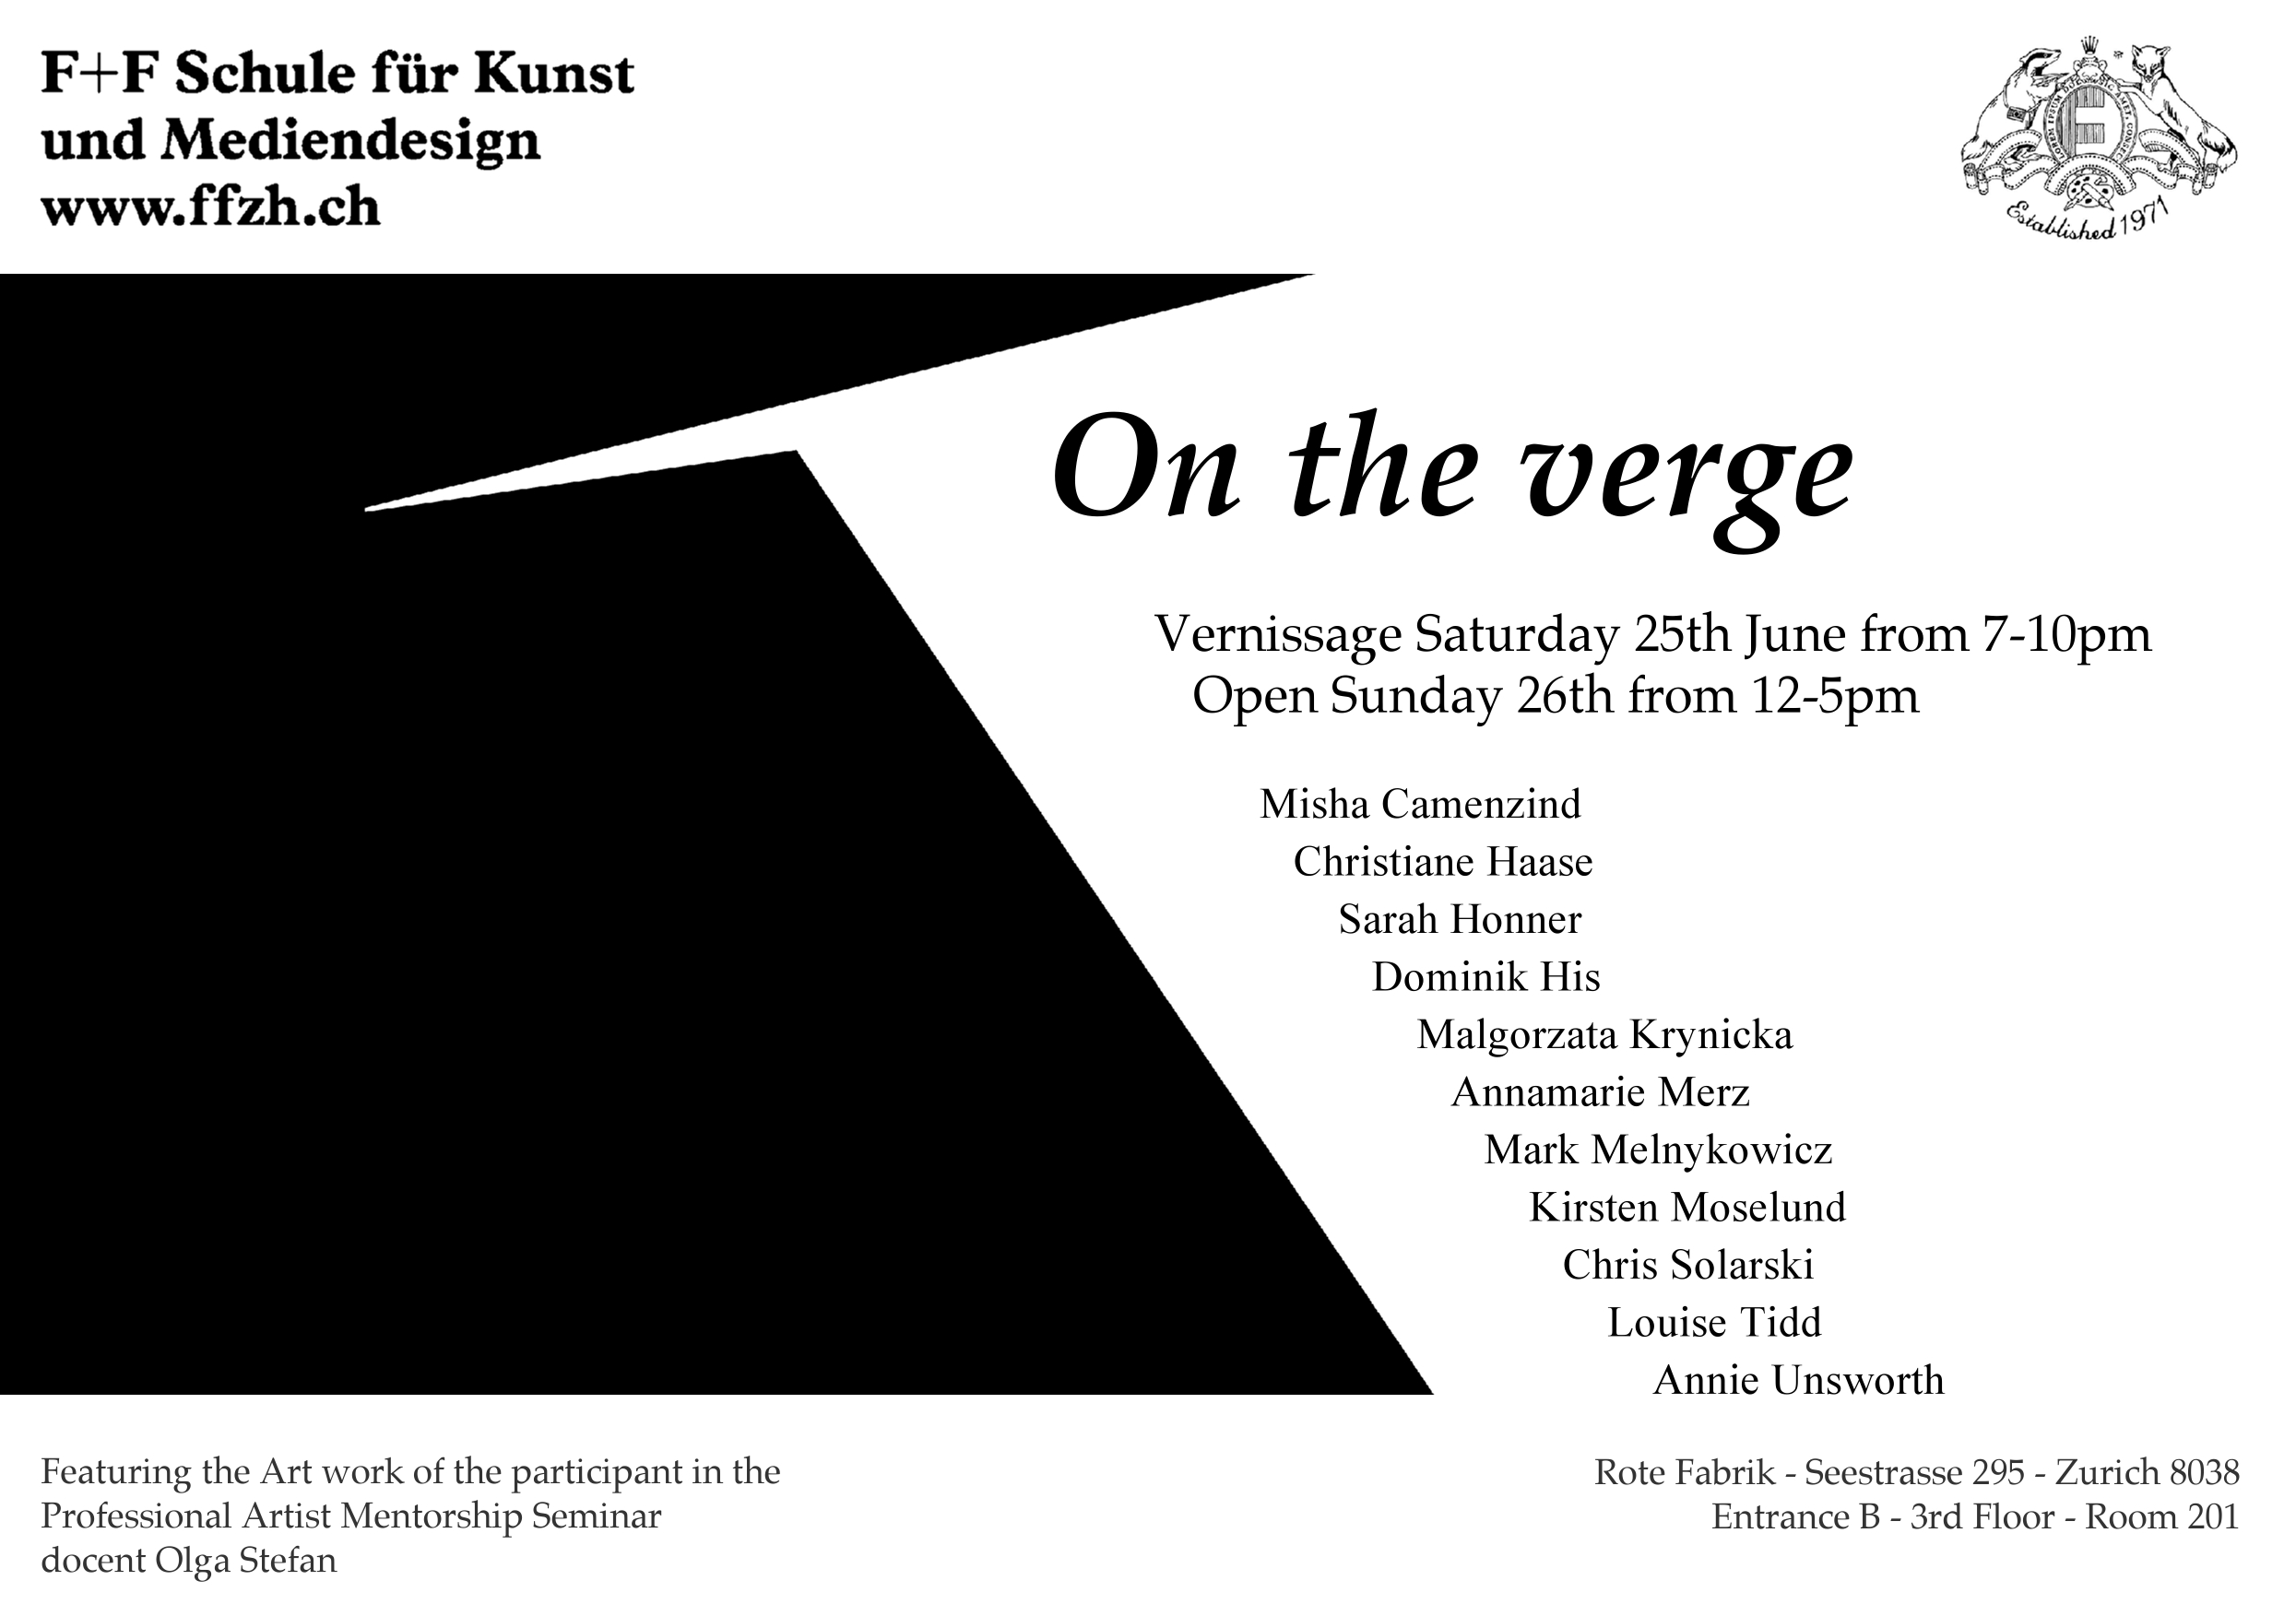 On the Verge Art Show